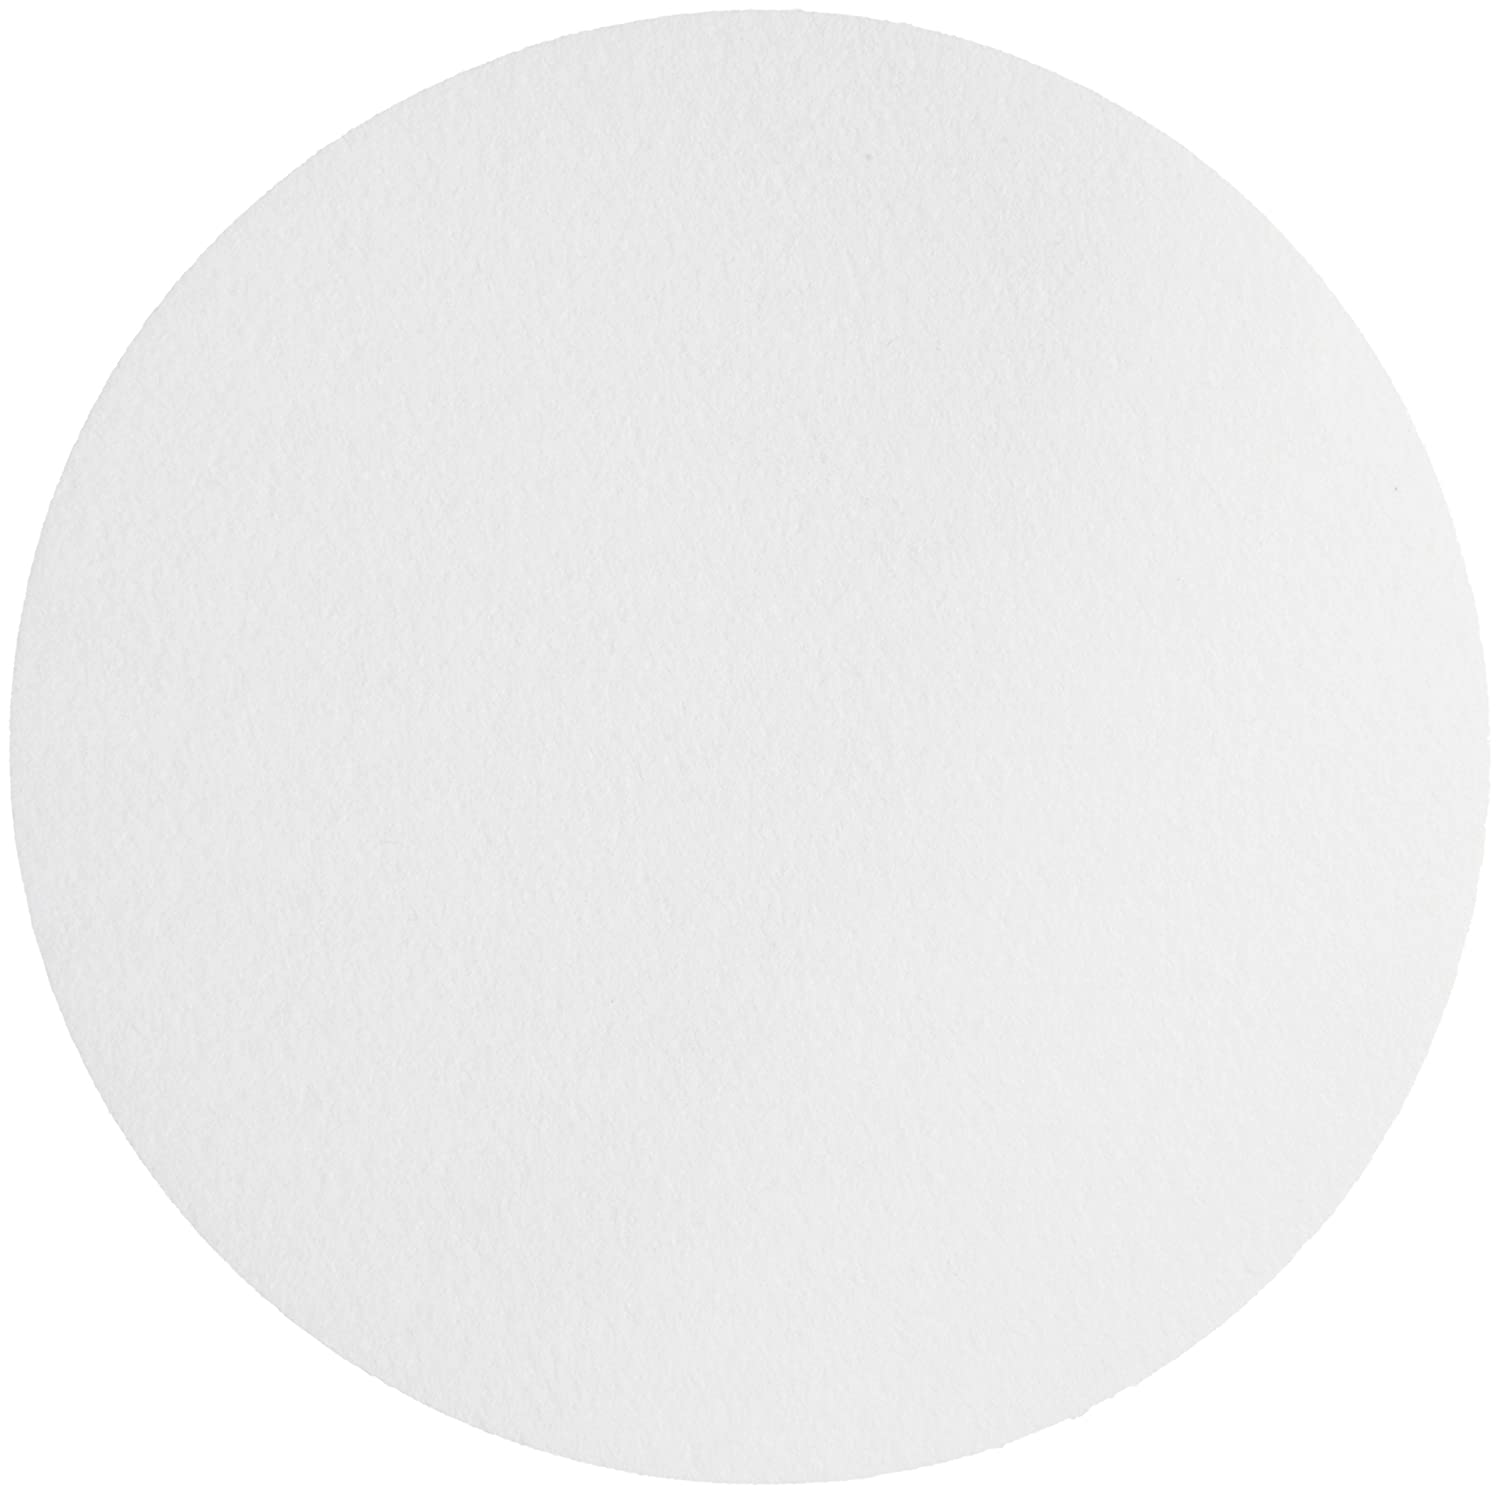 Whatman 1001-150 Qualitative Filter Paper Circles, 11 Micron, 10.5 s/100mL/sq inch Flow Rate, Grade 1, 150mm Diameter (Pack of 100) GE Healthcare F1000-7